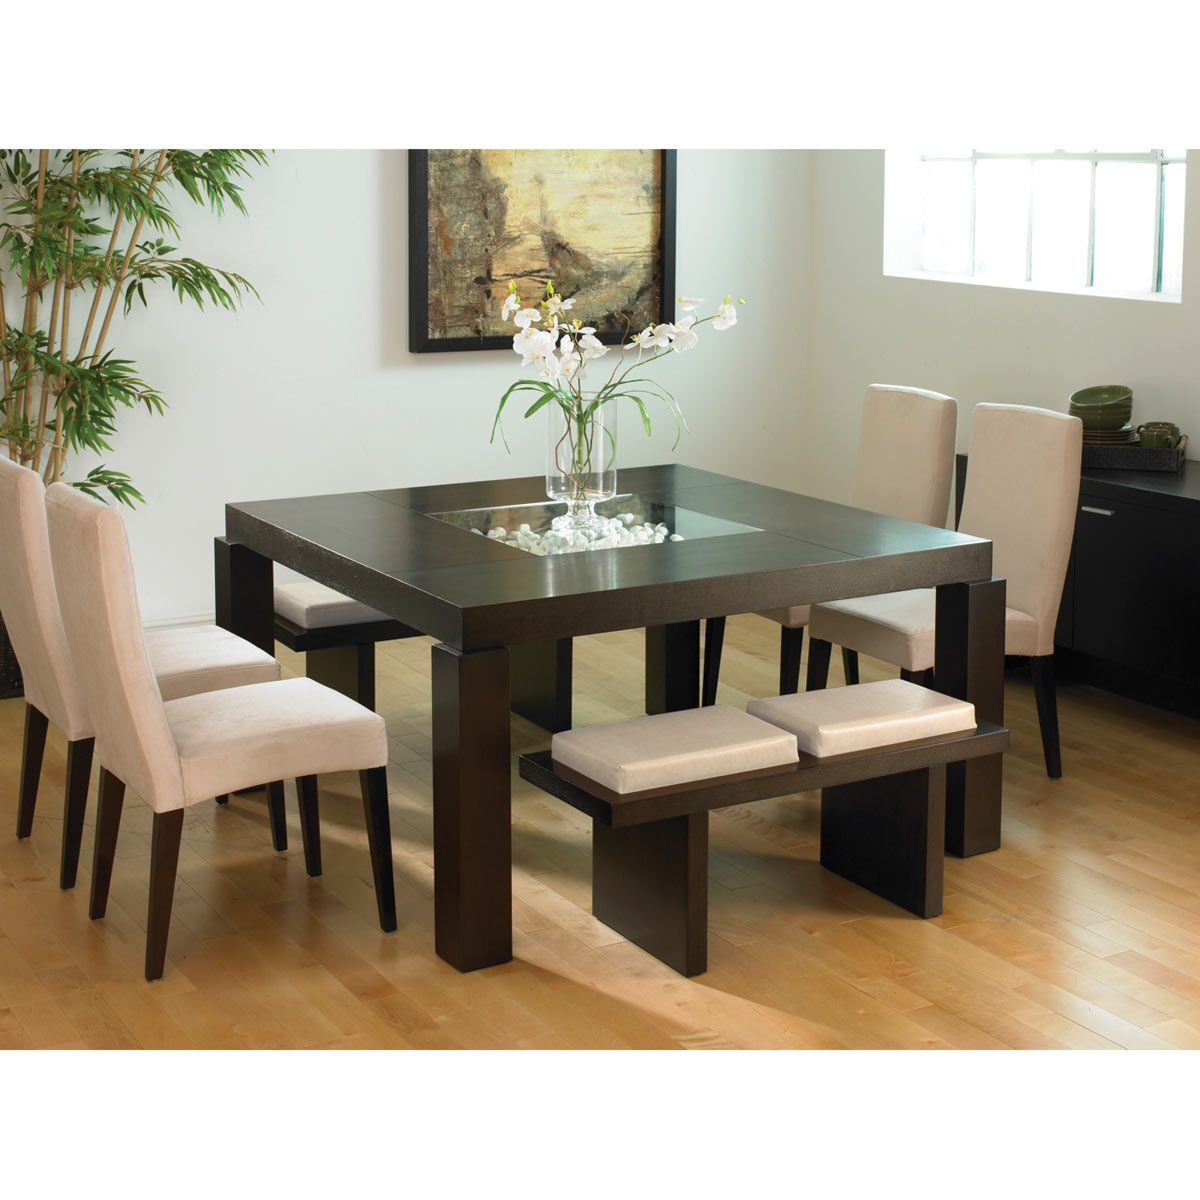 Rc Willey  Comitia Molina 5Piece Dining Set  For The Home Delectable The Room Place Dining Room Sets Inspiration Design